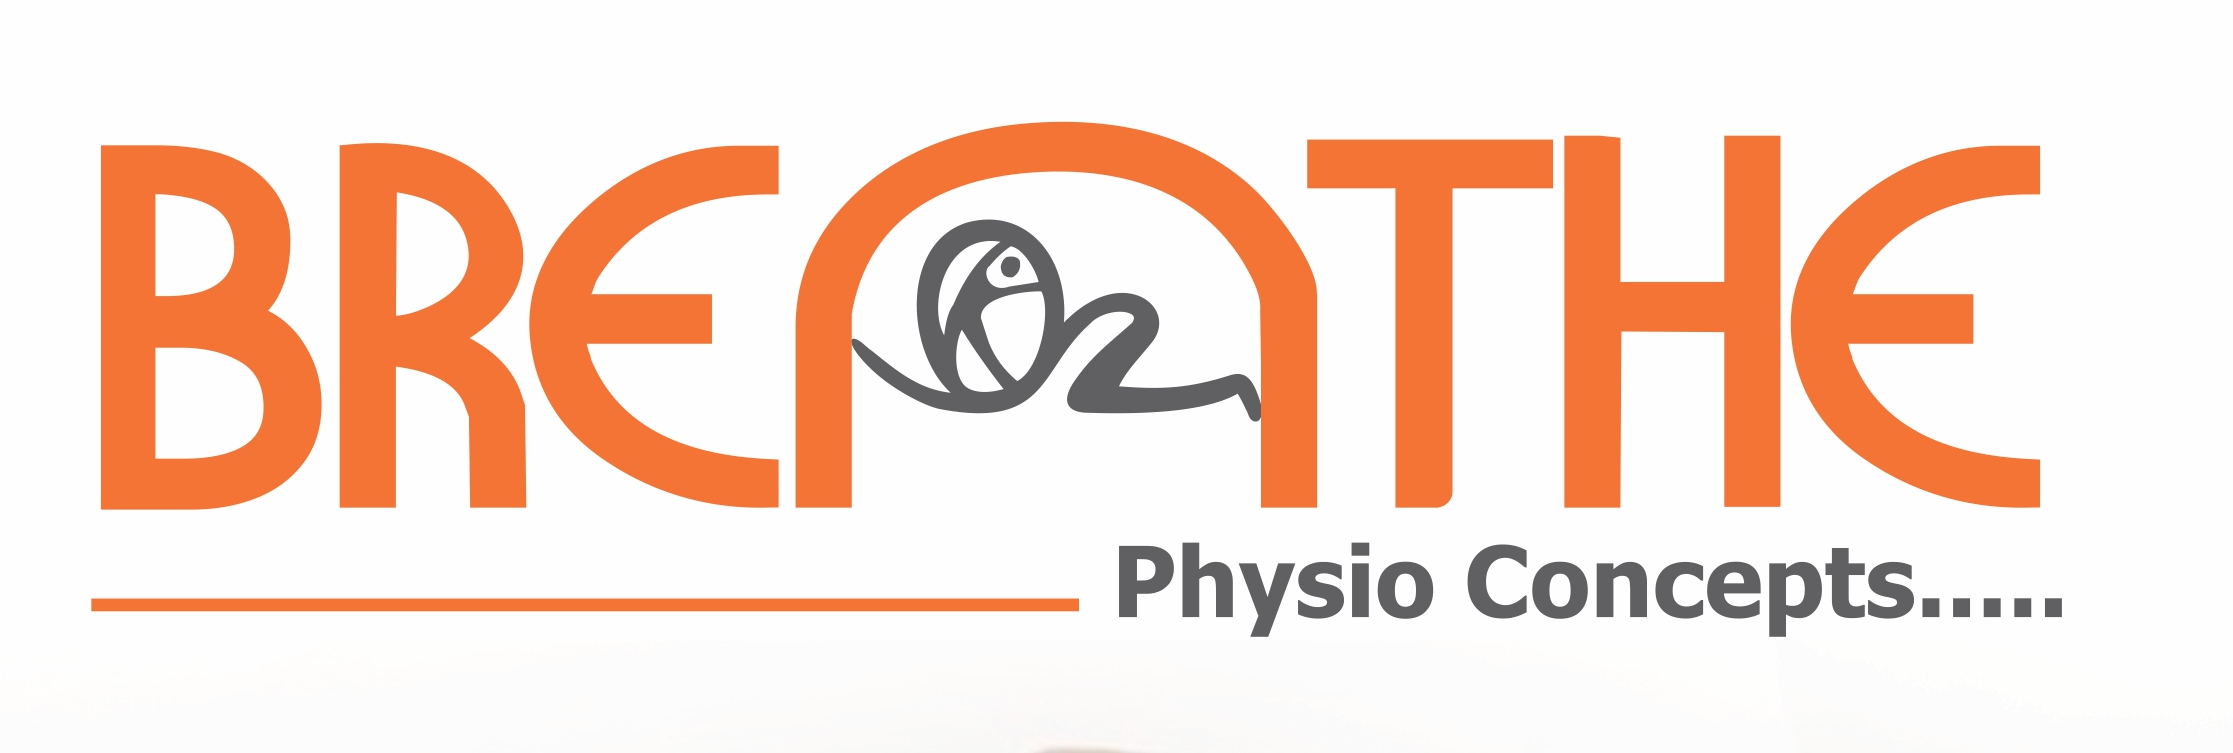 Breathe Physio Concepts